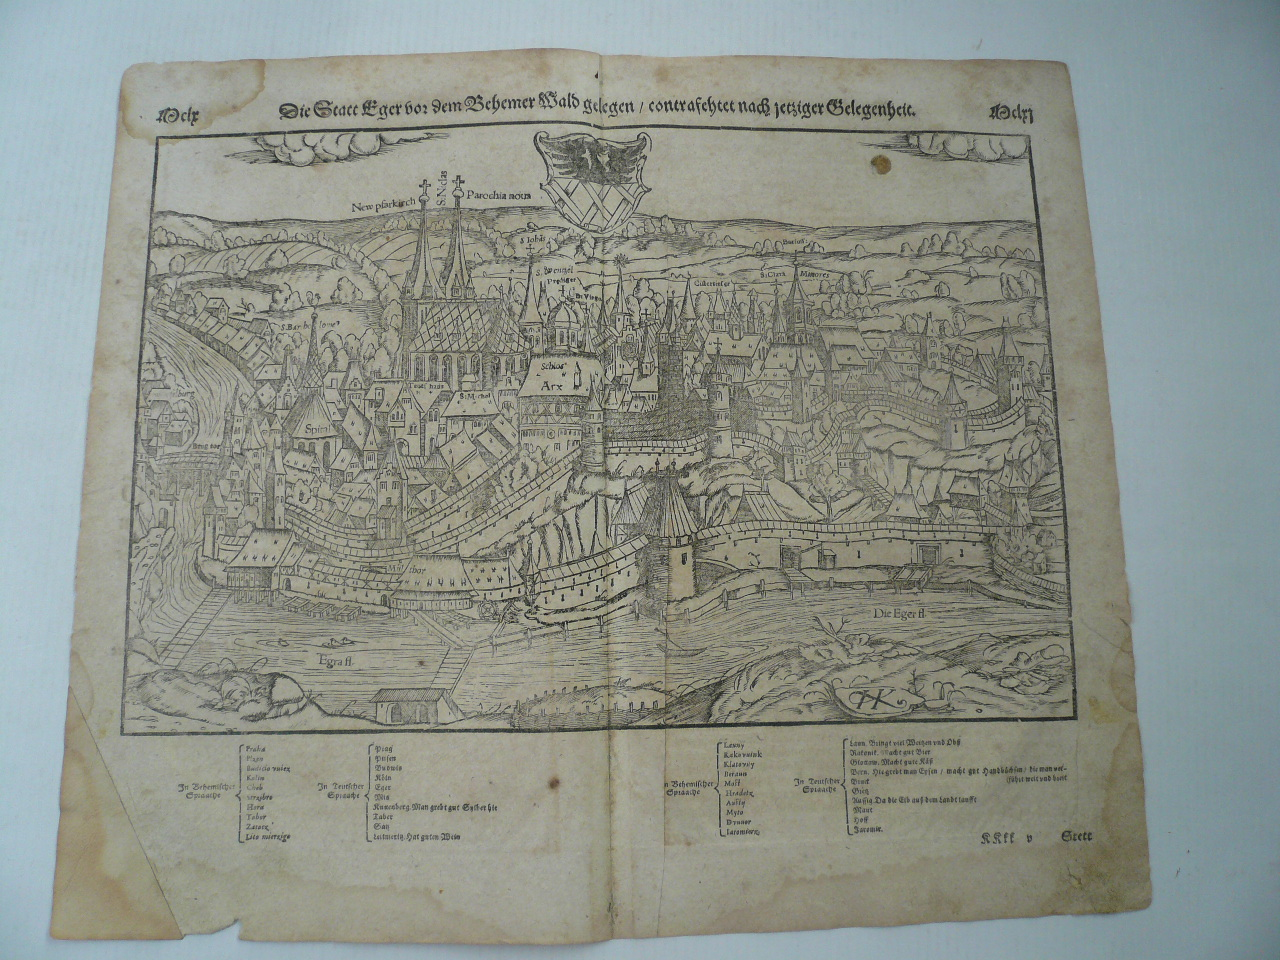 Cheb/Eger, woodcut,anno 1580, S. Münster      Woodcut, edited by